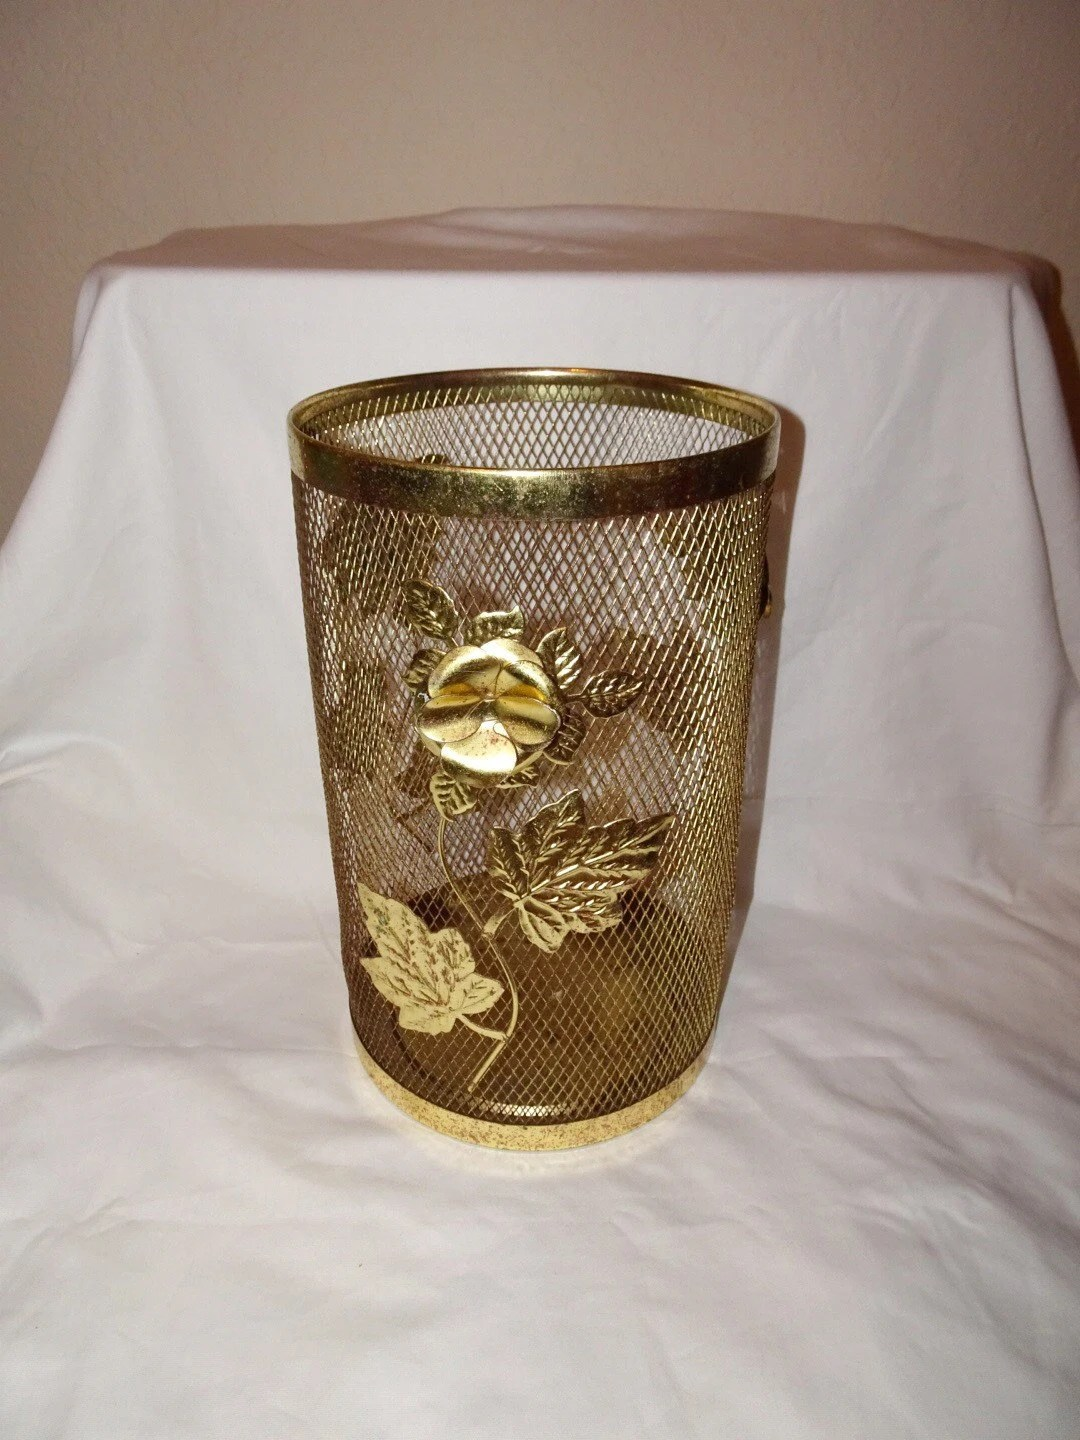 Decorative Metal Waste Baskets Vintage Brass Gold Flower Waste Basket Italian Gold